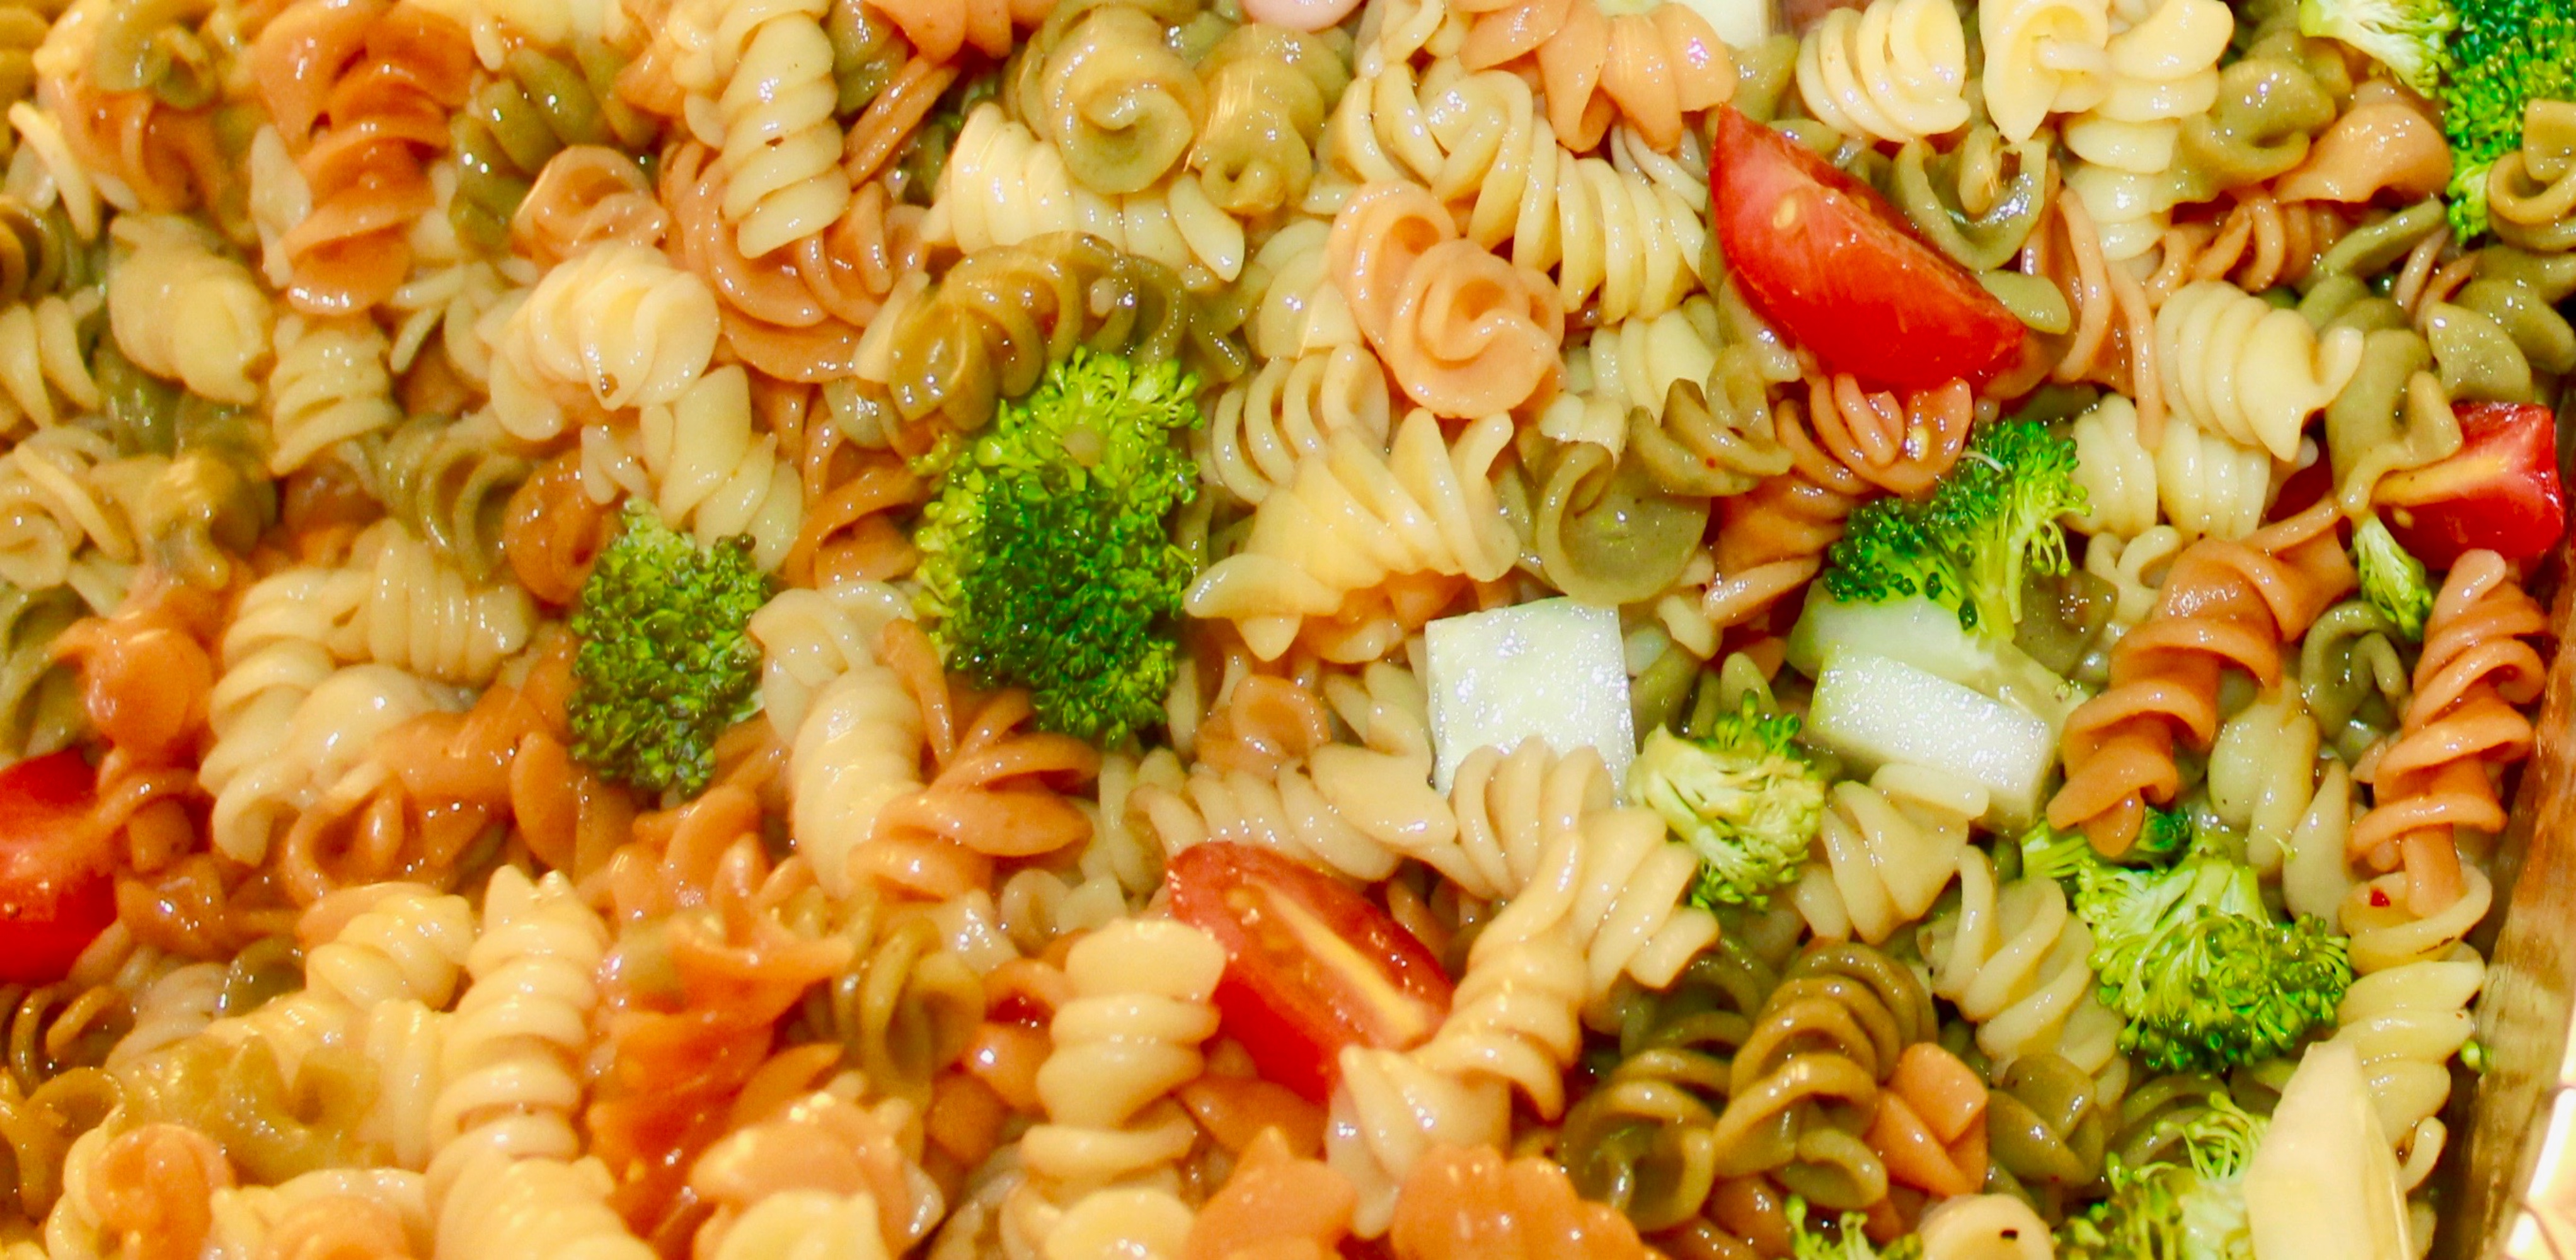 The Easiest Pasta Salad Recipe in the World